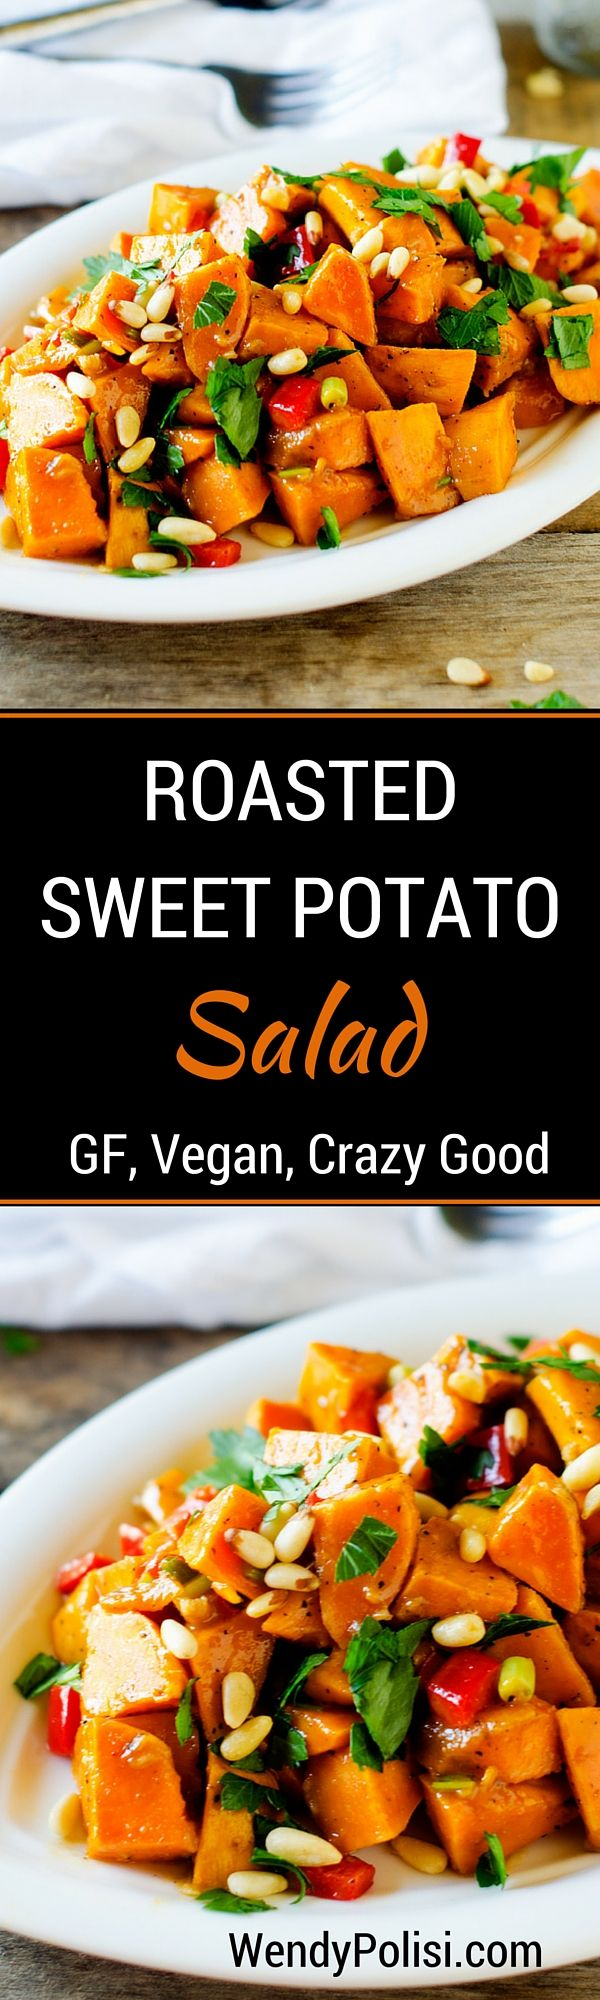 1000+ Ideas About Types Of Potatoes On Pinterest